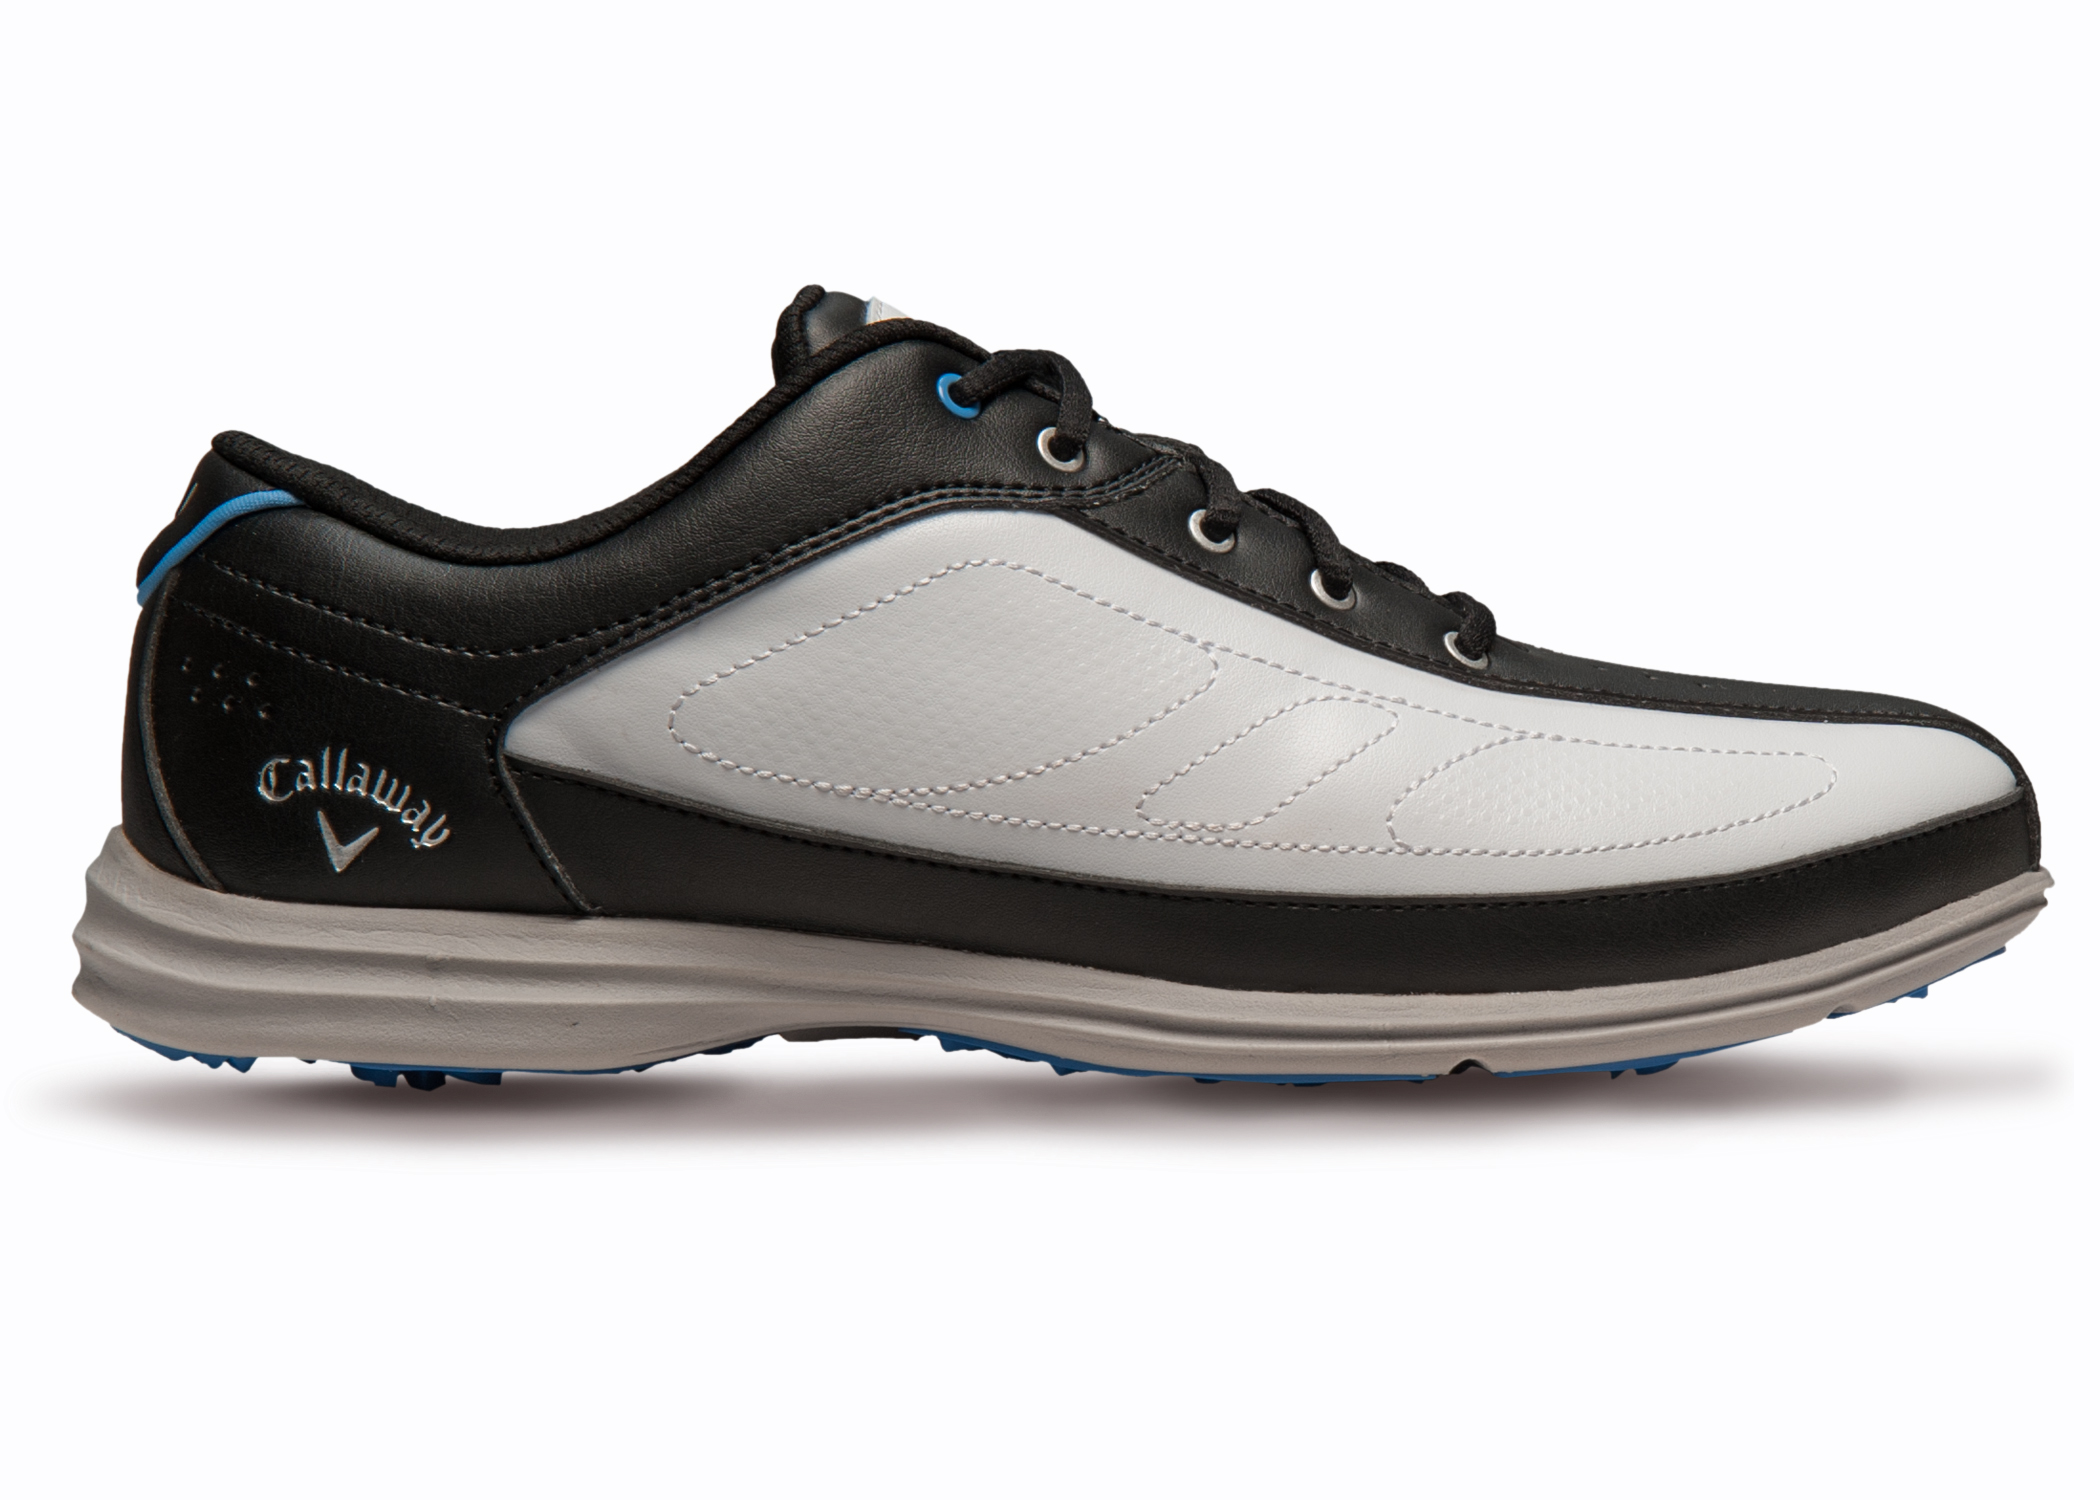 new callaway cirrus 2016 womens golf shoes size